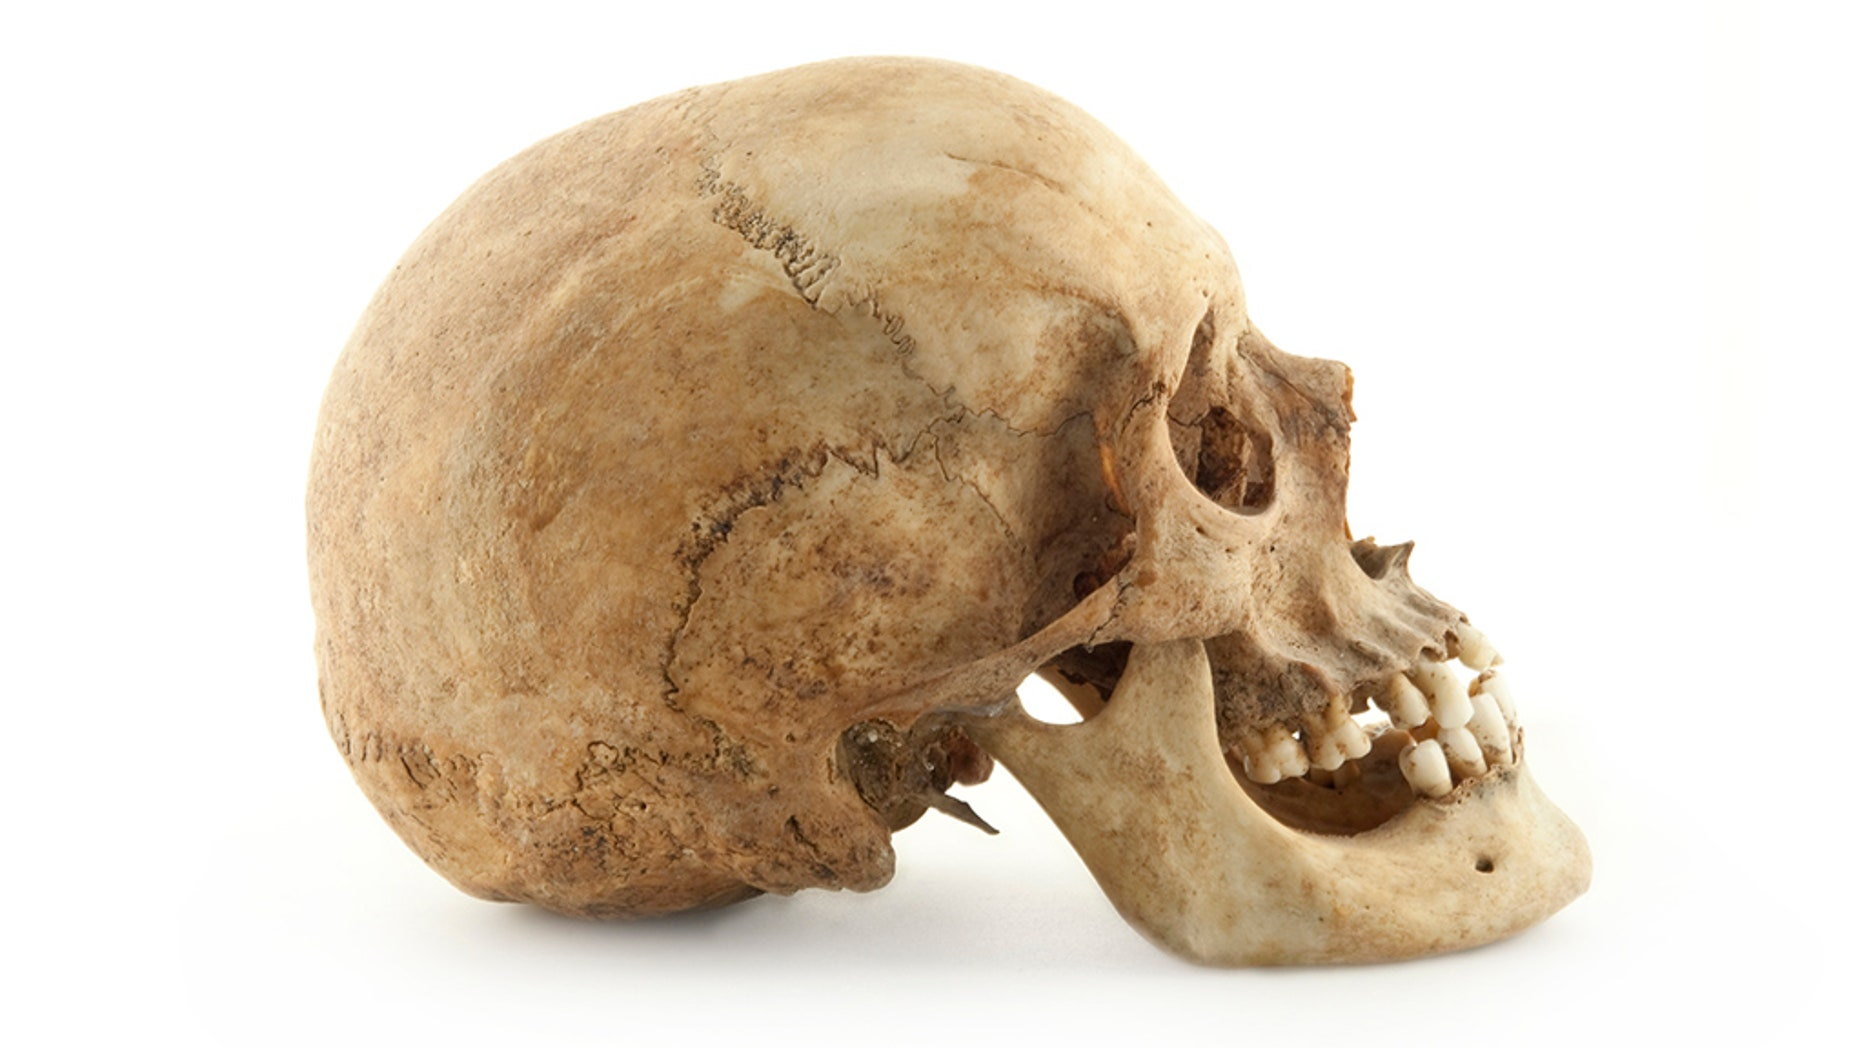 A human skull was discovered in a remote, wooded area near Tuscaloosa, Alabama